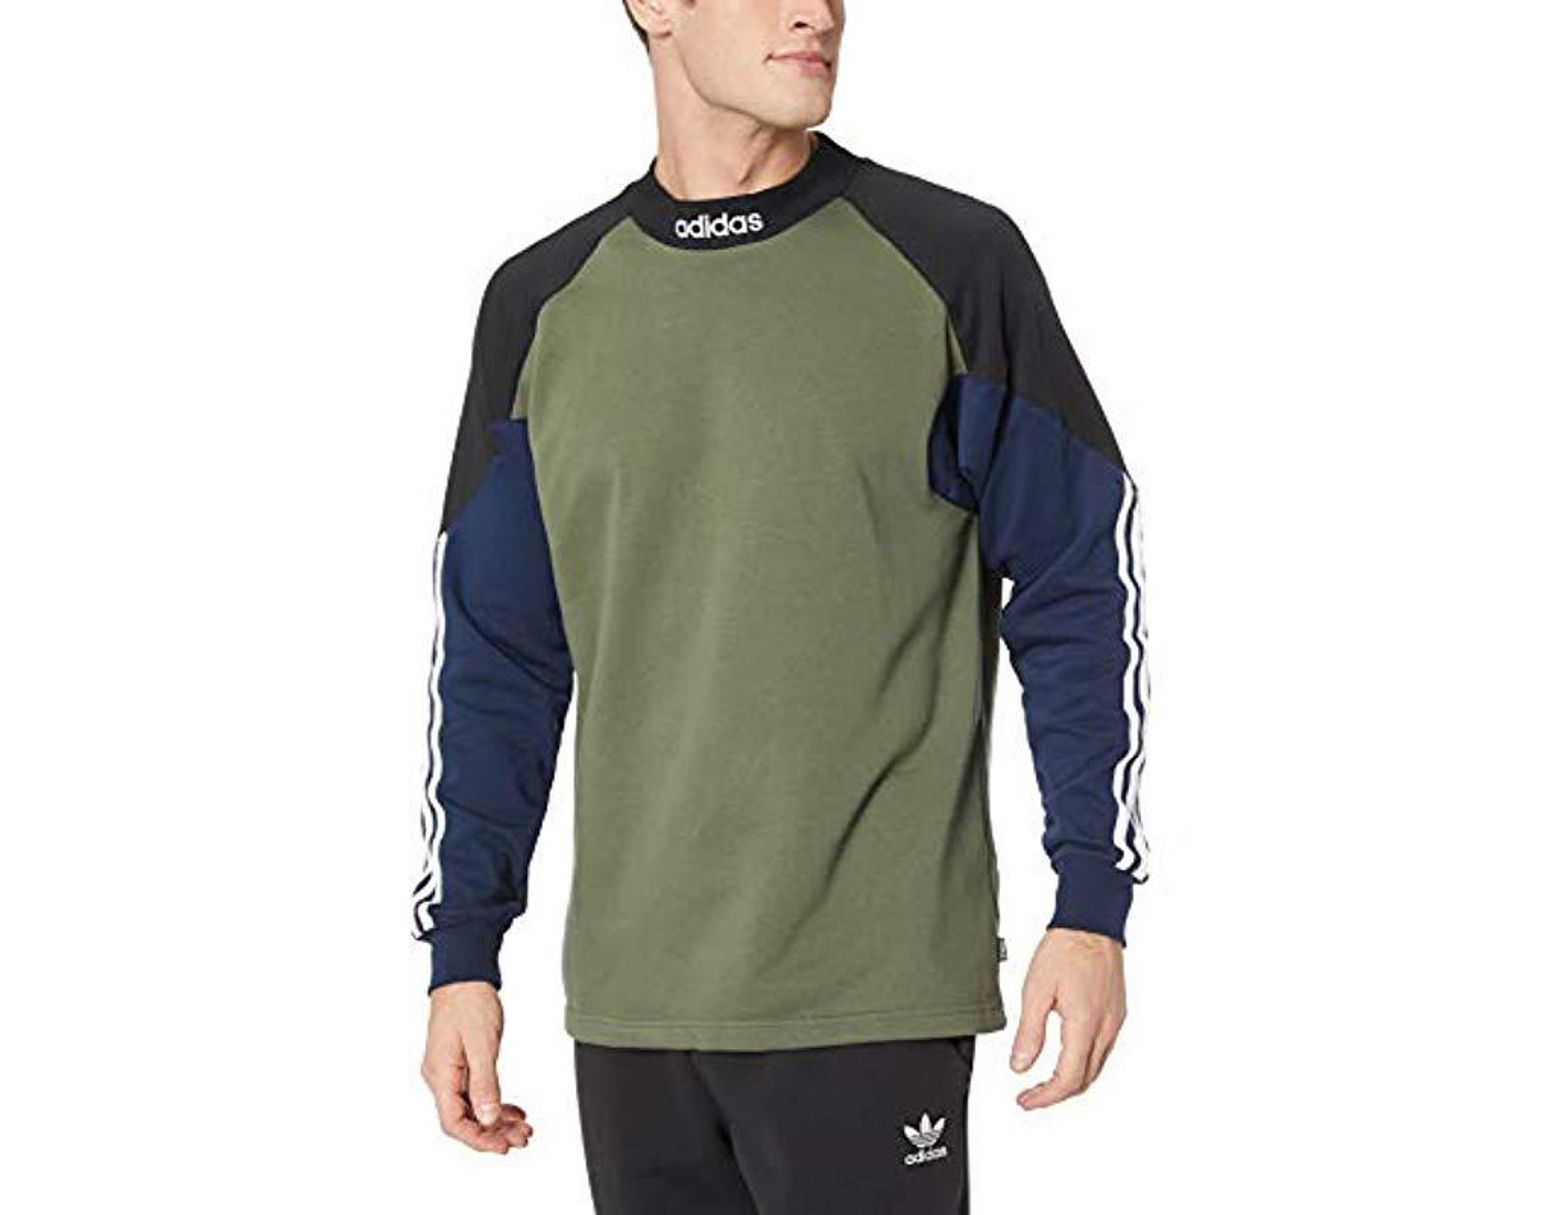 72205bf6f21da adidas Originals Skateboarding Long Sleeve Goalie Fleece in Green for Men -  Lyst